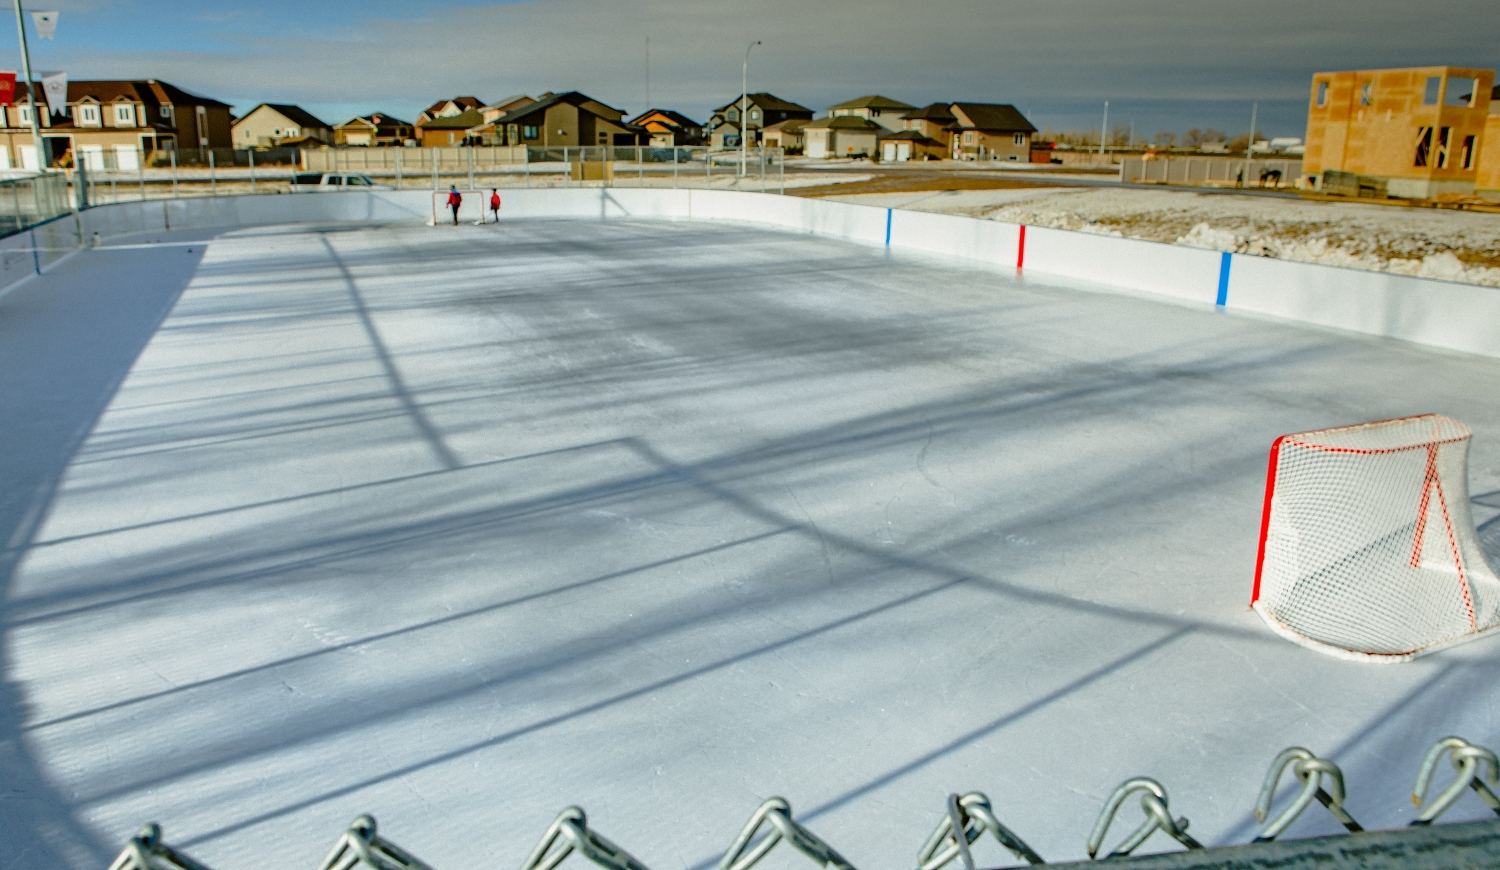 Double K Outdoor Rink Open for the Season